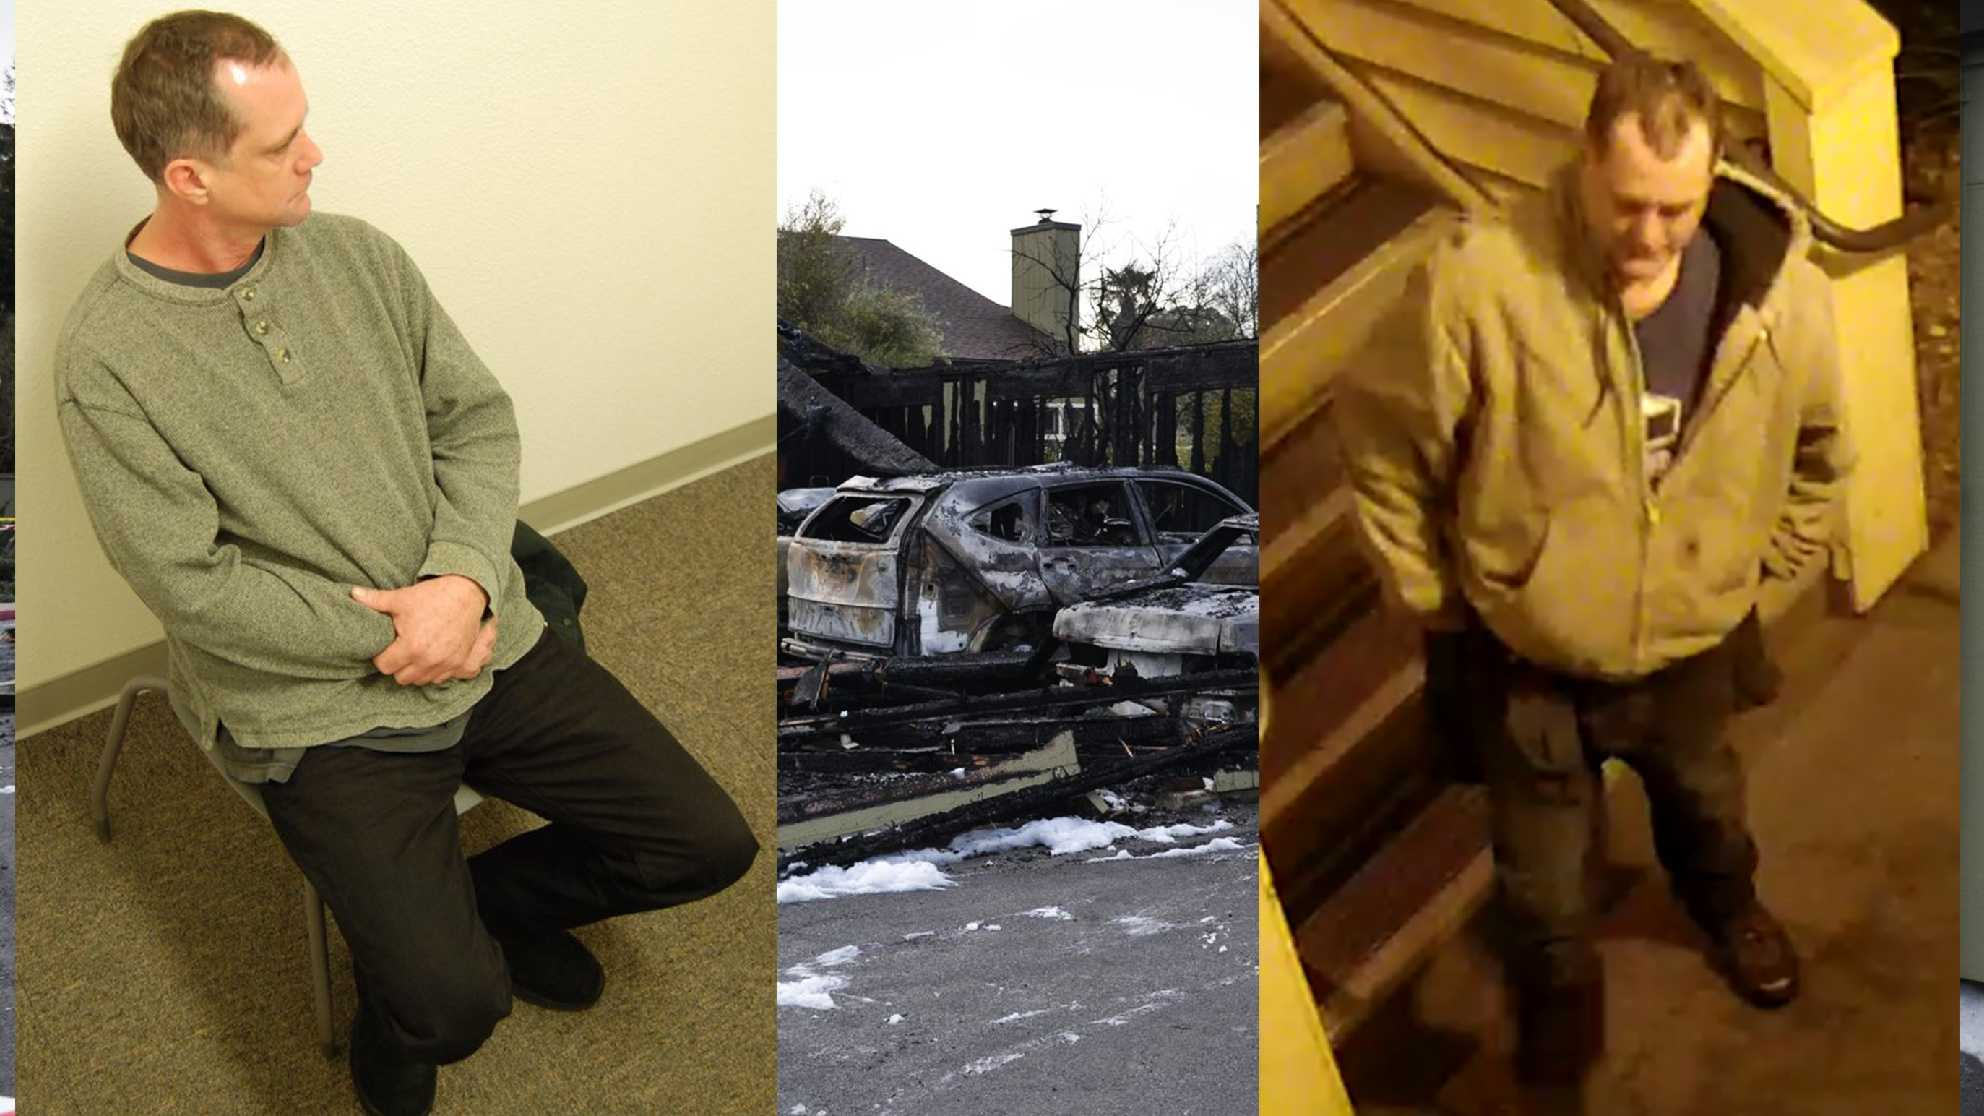 Brian Tell, left, and the Soquel car arson suspect, right.